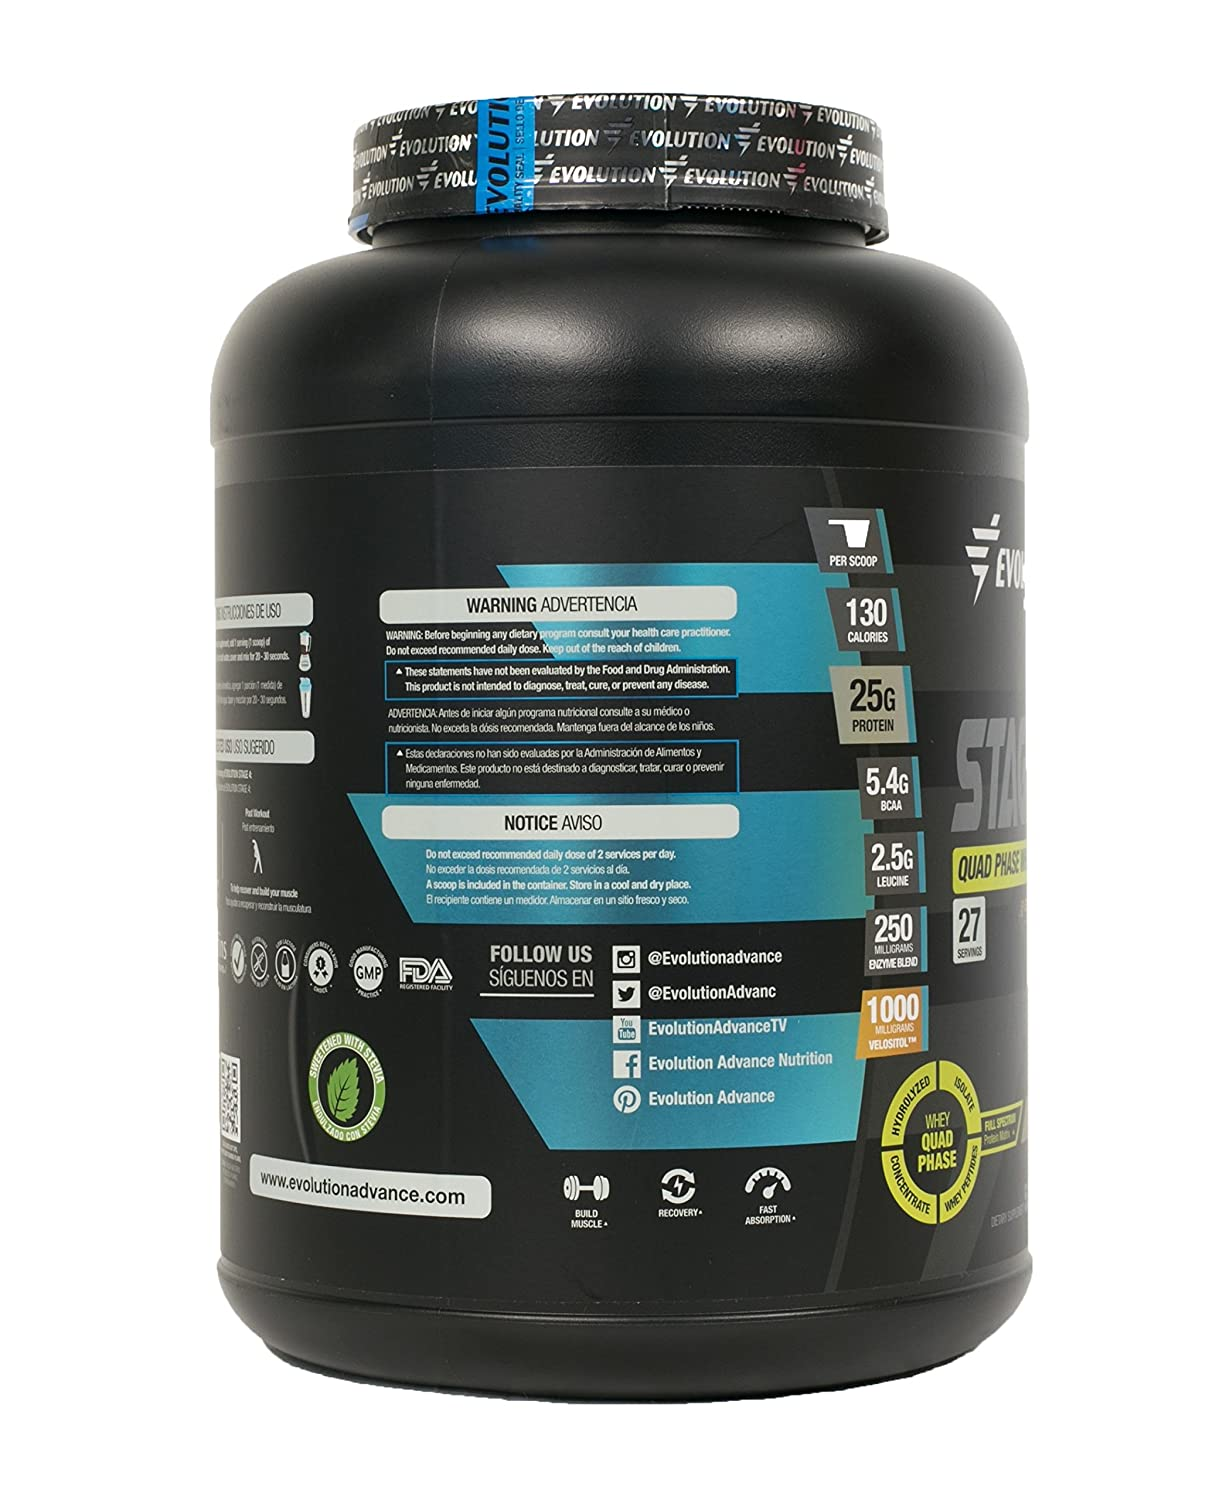 Amazon.com: Evolution Advance Nutrition STAGE 4 QUAD PHASE WHEY PROTEIN MATRIX (Hydrolyzed Whey Protein, Whey Protein Isolate, Whey Protein Concentrate and ...